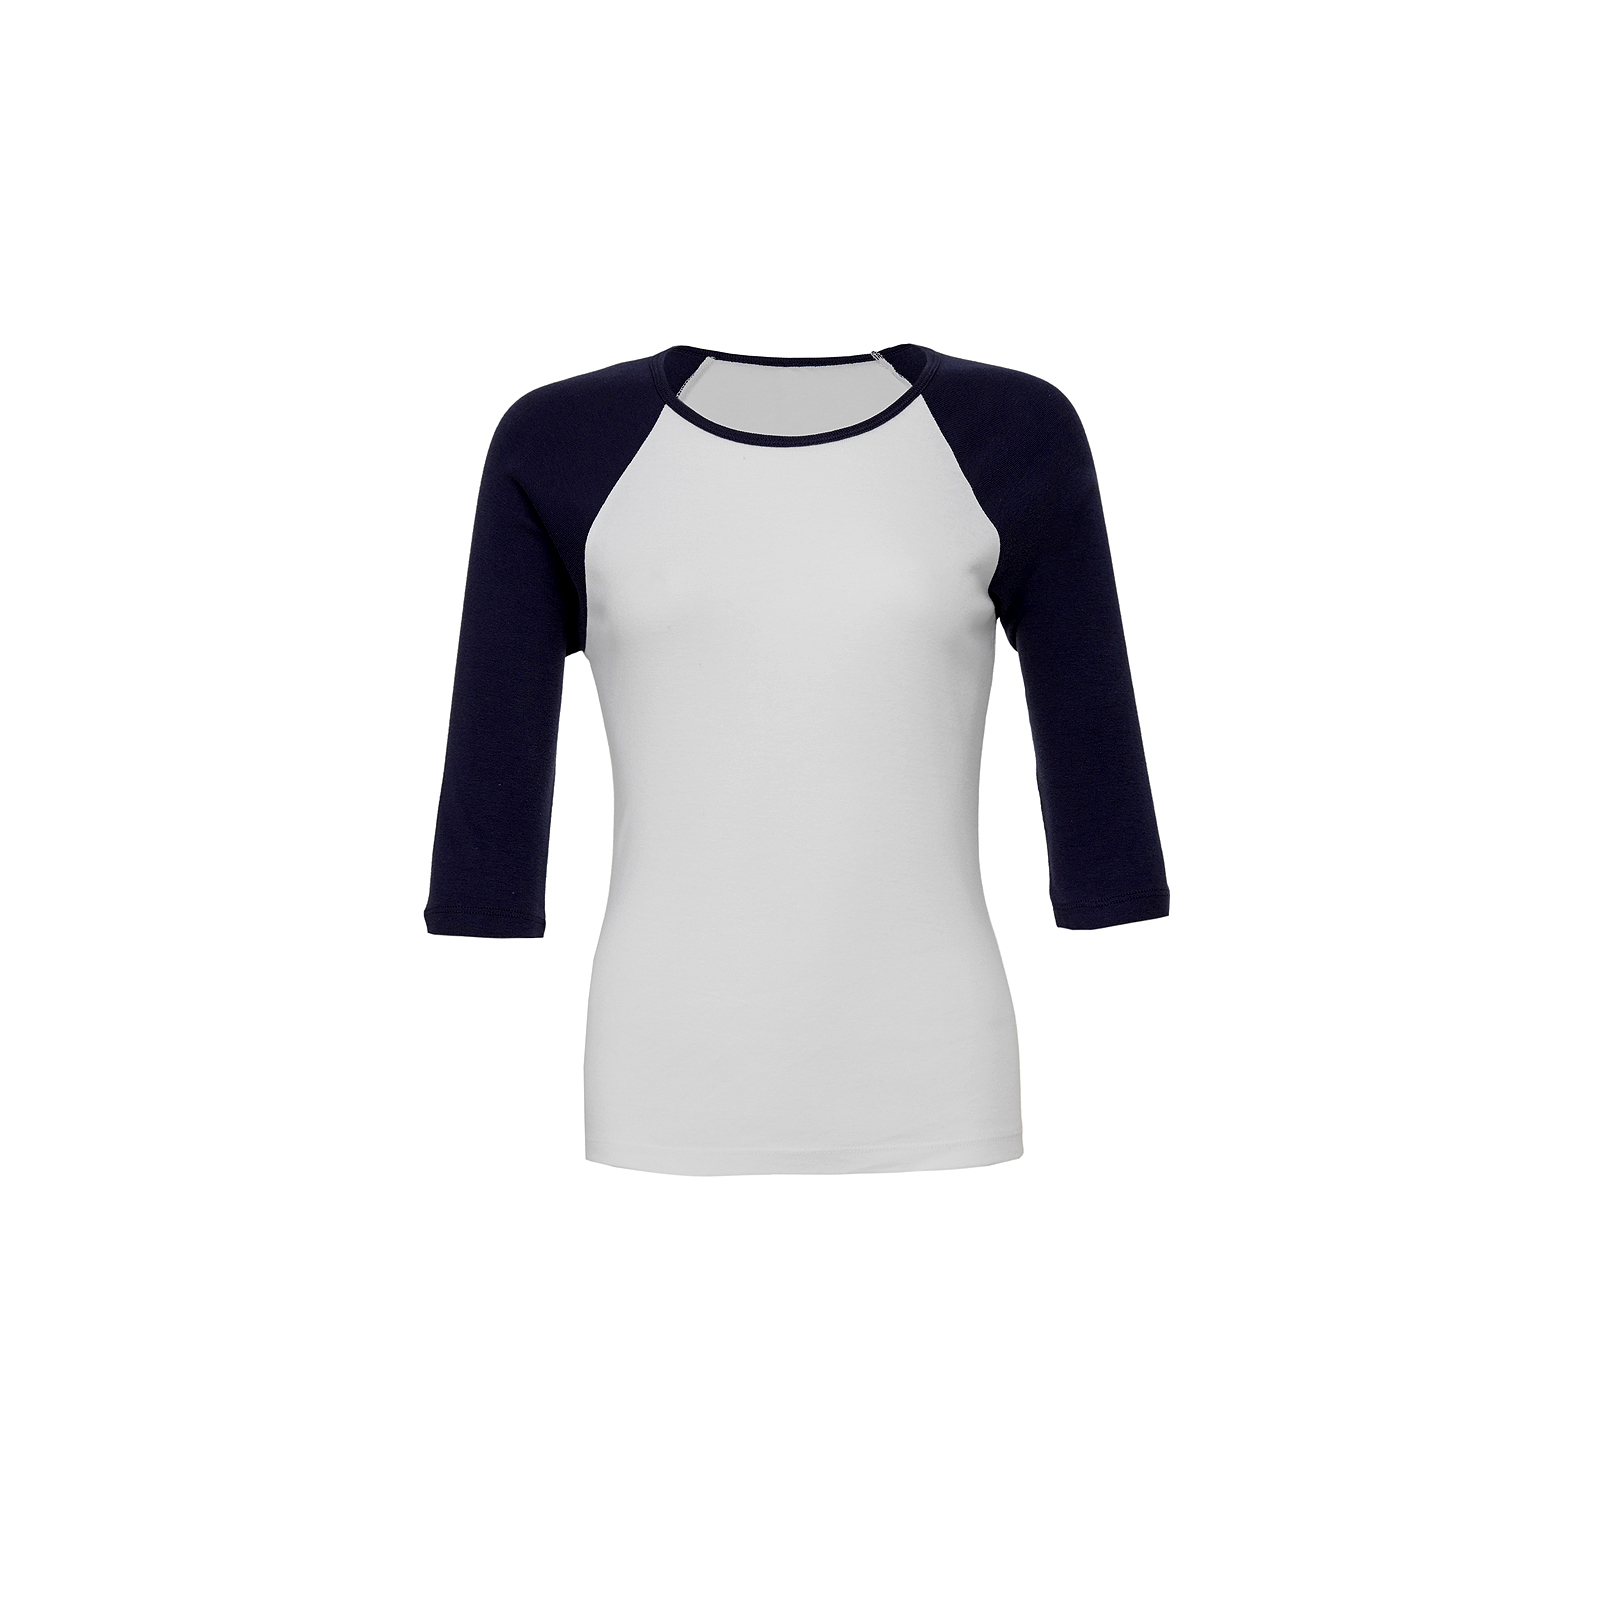 Canvas-Baby-Rib-Knit-3-4-Sleeve-Contrast-Raglan-T-Shirt-Cotton-Ladies-Fitted-Top